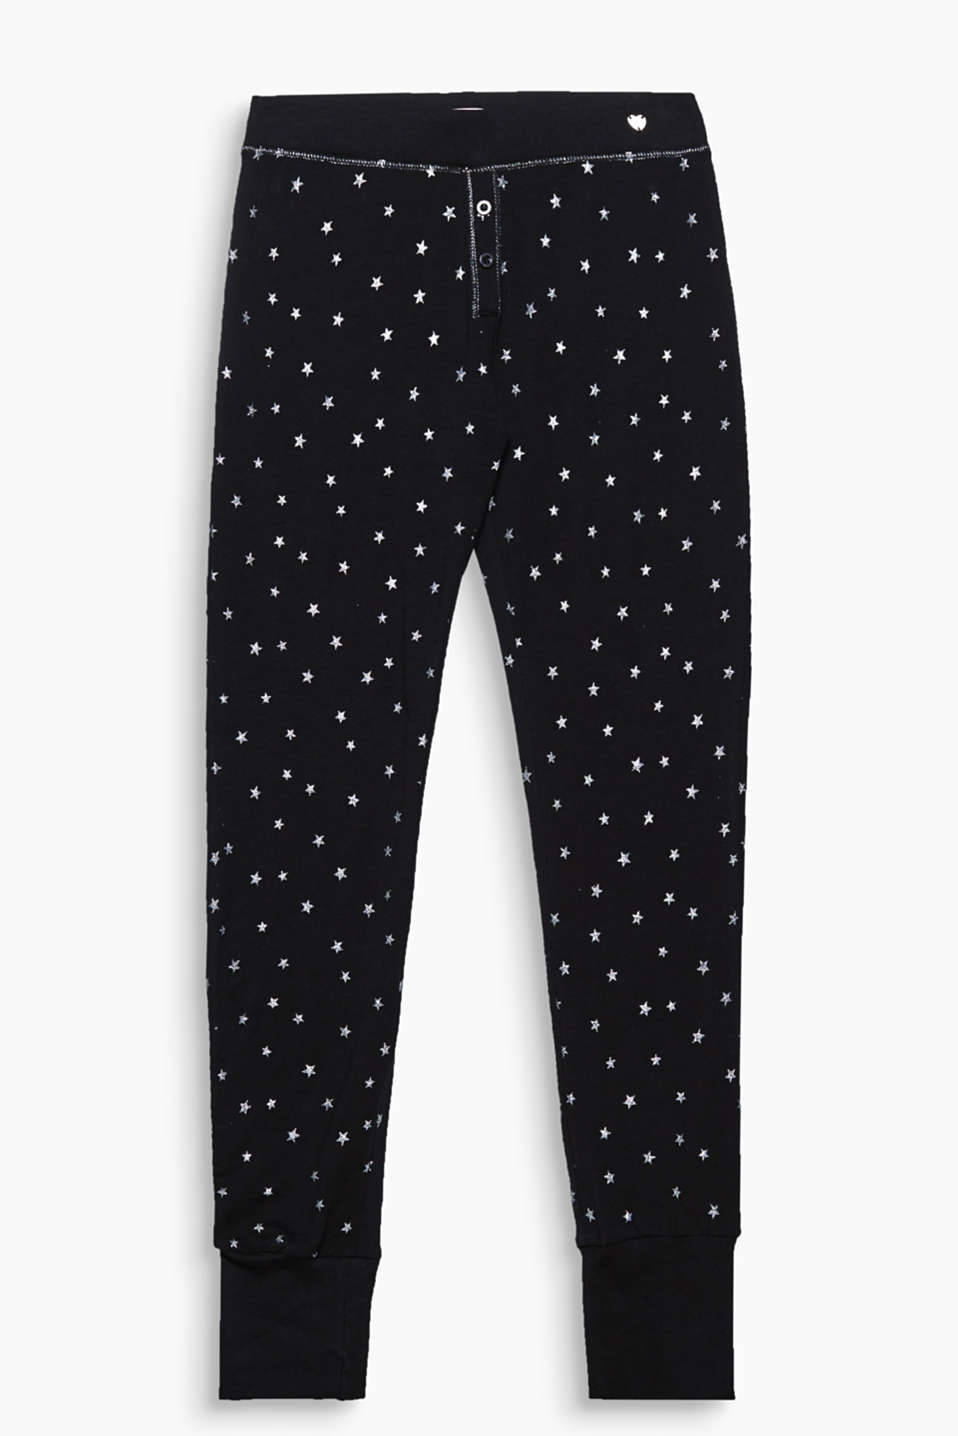 These stretch jersey trousers with a glittering star print and ribbed cuffs are extremely comfortable!